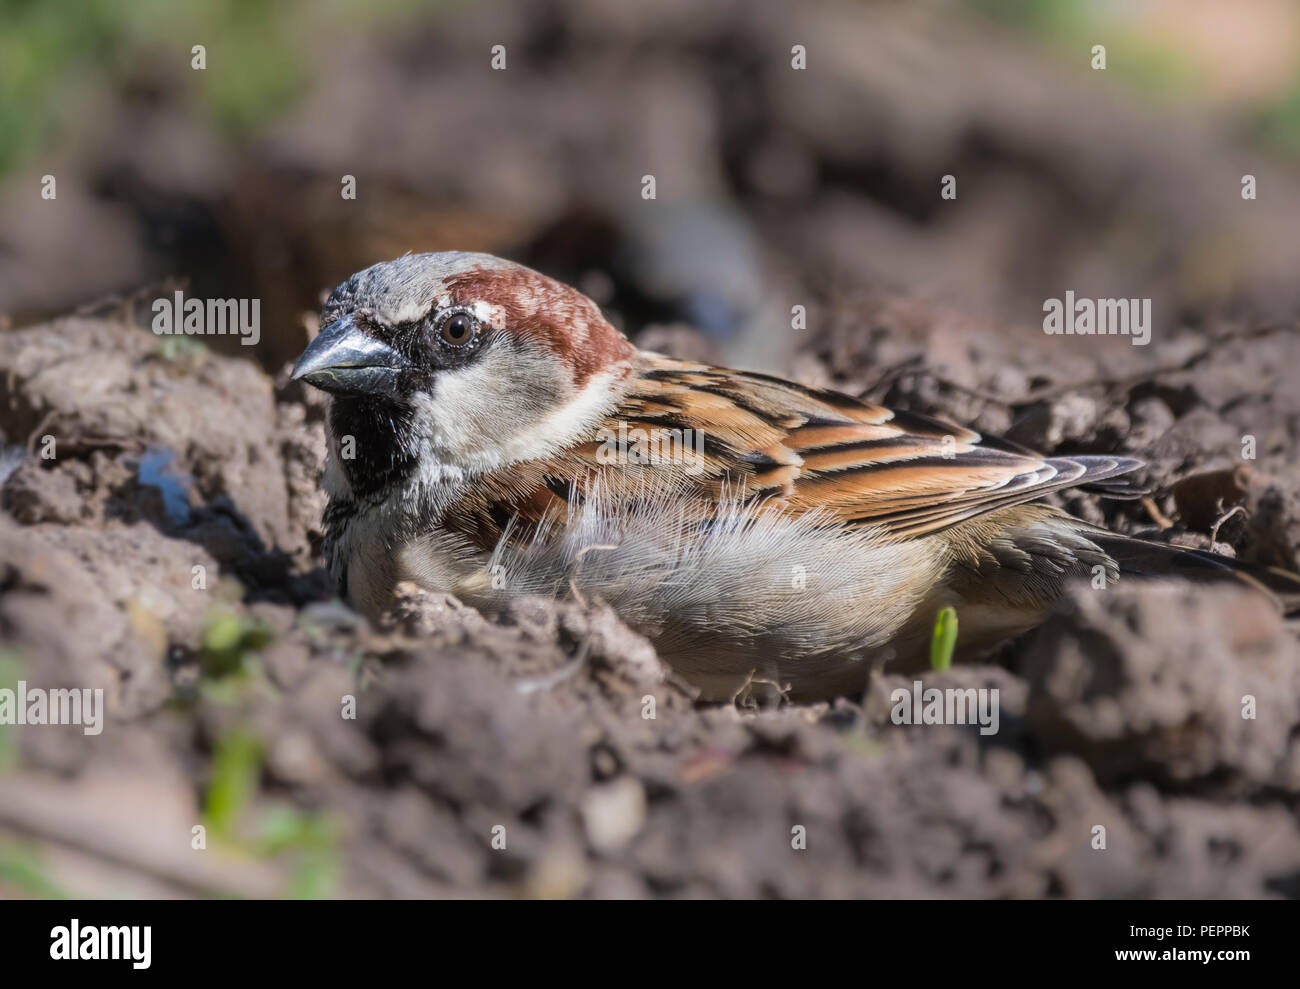 House Sparrow (Passer domesticus) sitting on the ground on earth in a garden in Spring in West Sussex, England, UK. - Stock Image